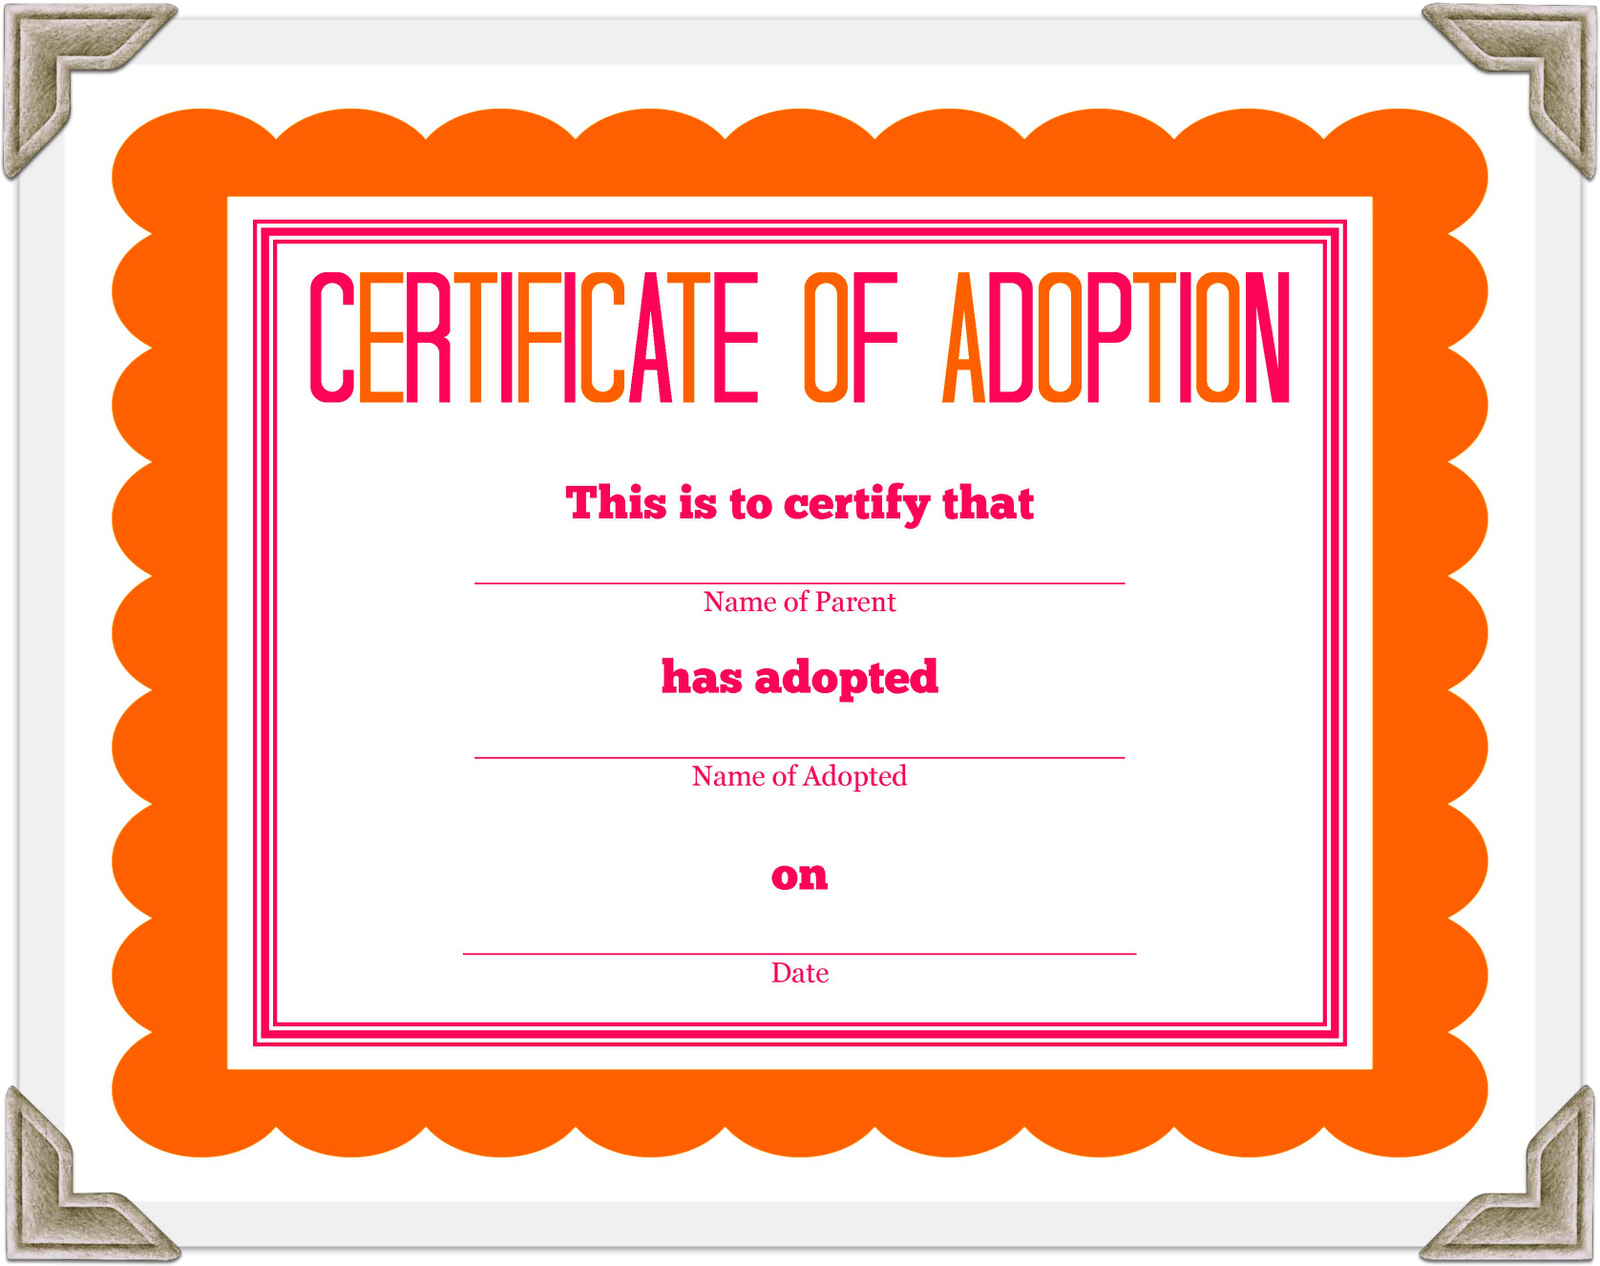 Adoption certificate template free download aashe for Fake birth certificate template free download